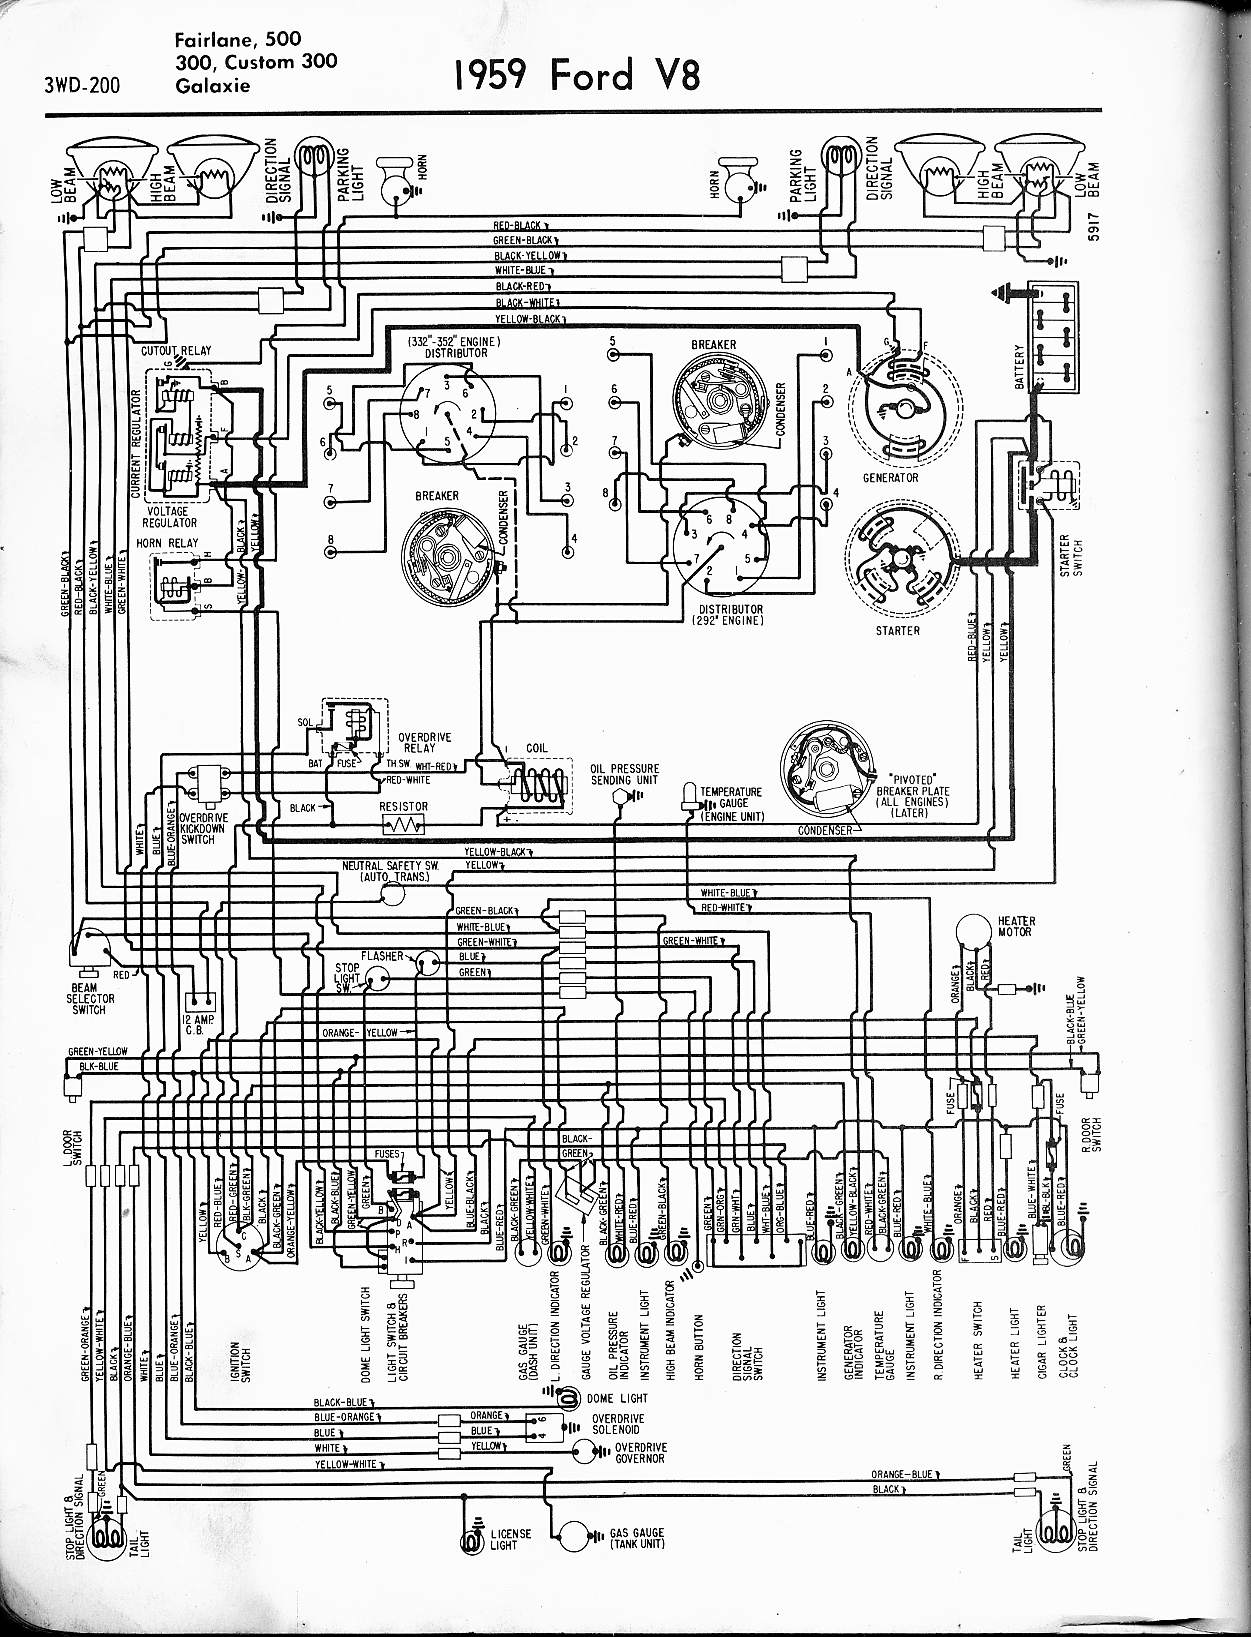 57 65 Ford Wiring Diagrams Pioneer Diagram Moreover Radio 1959 V8 Fairlane 500 300 Custom